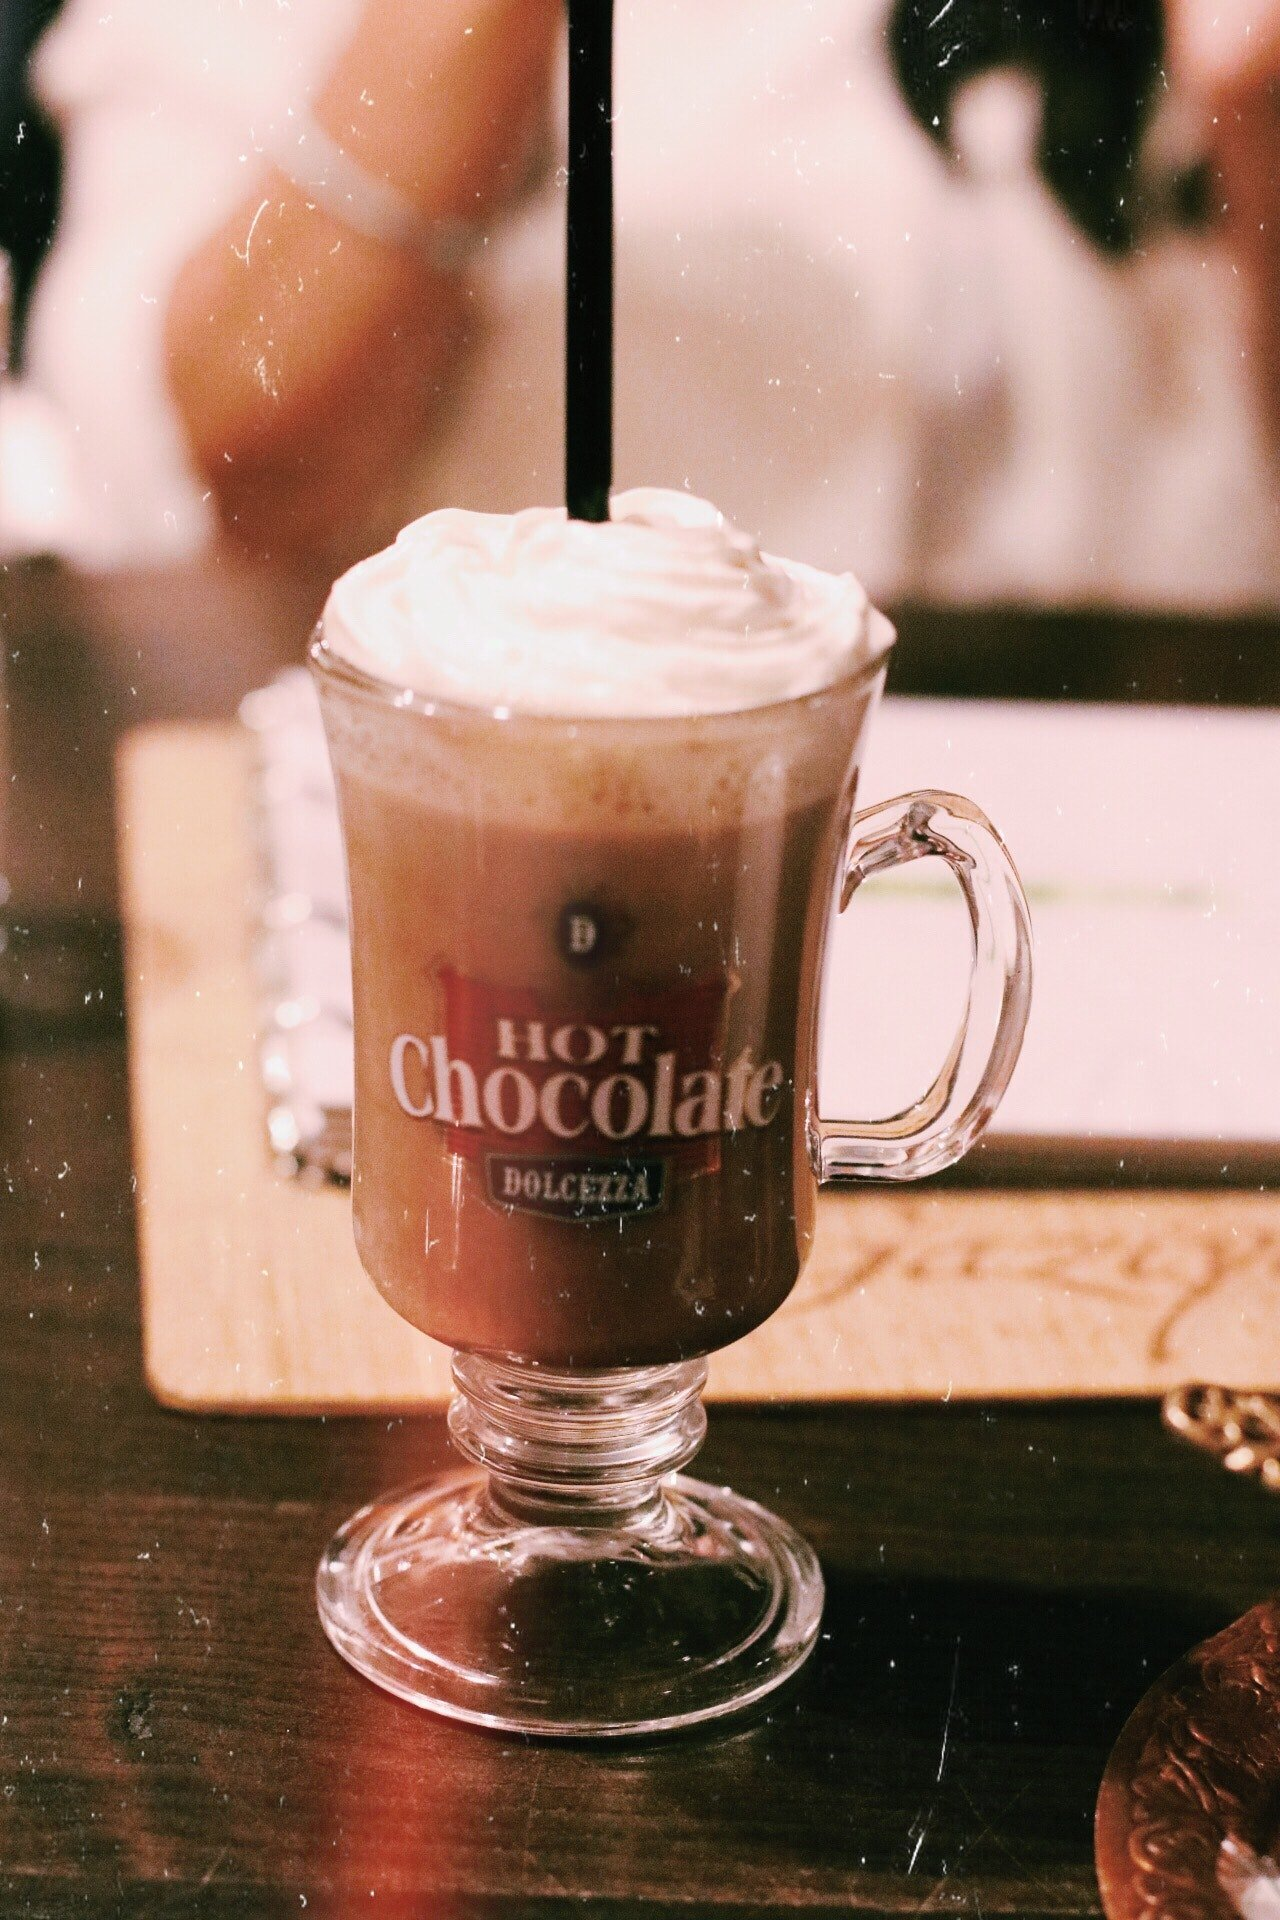 Photo of a chocolatey drink in a cup | Photo: Pexels